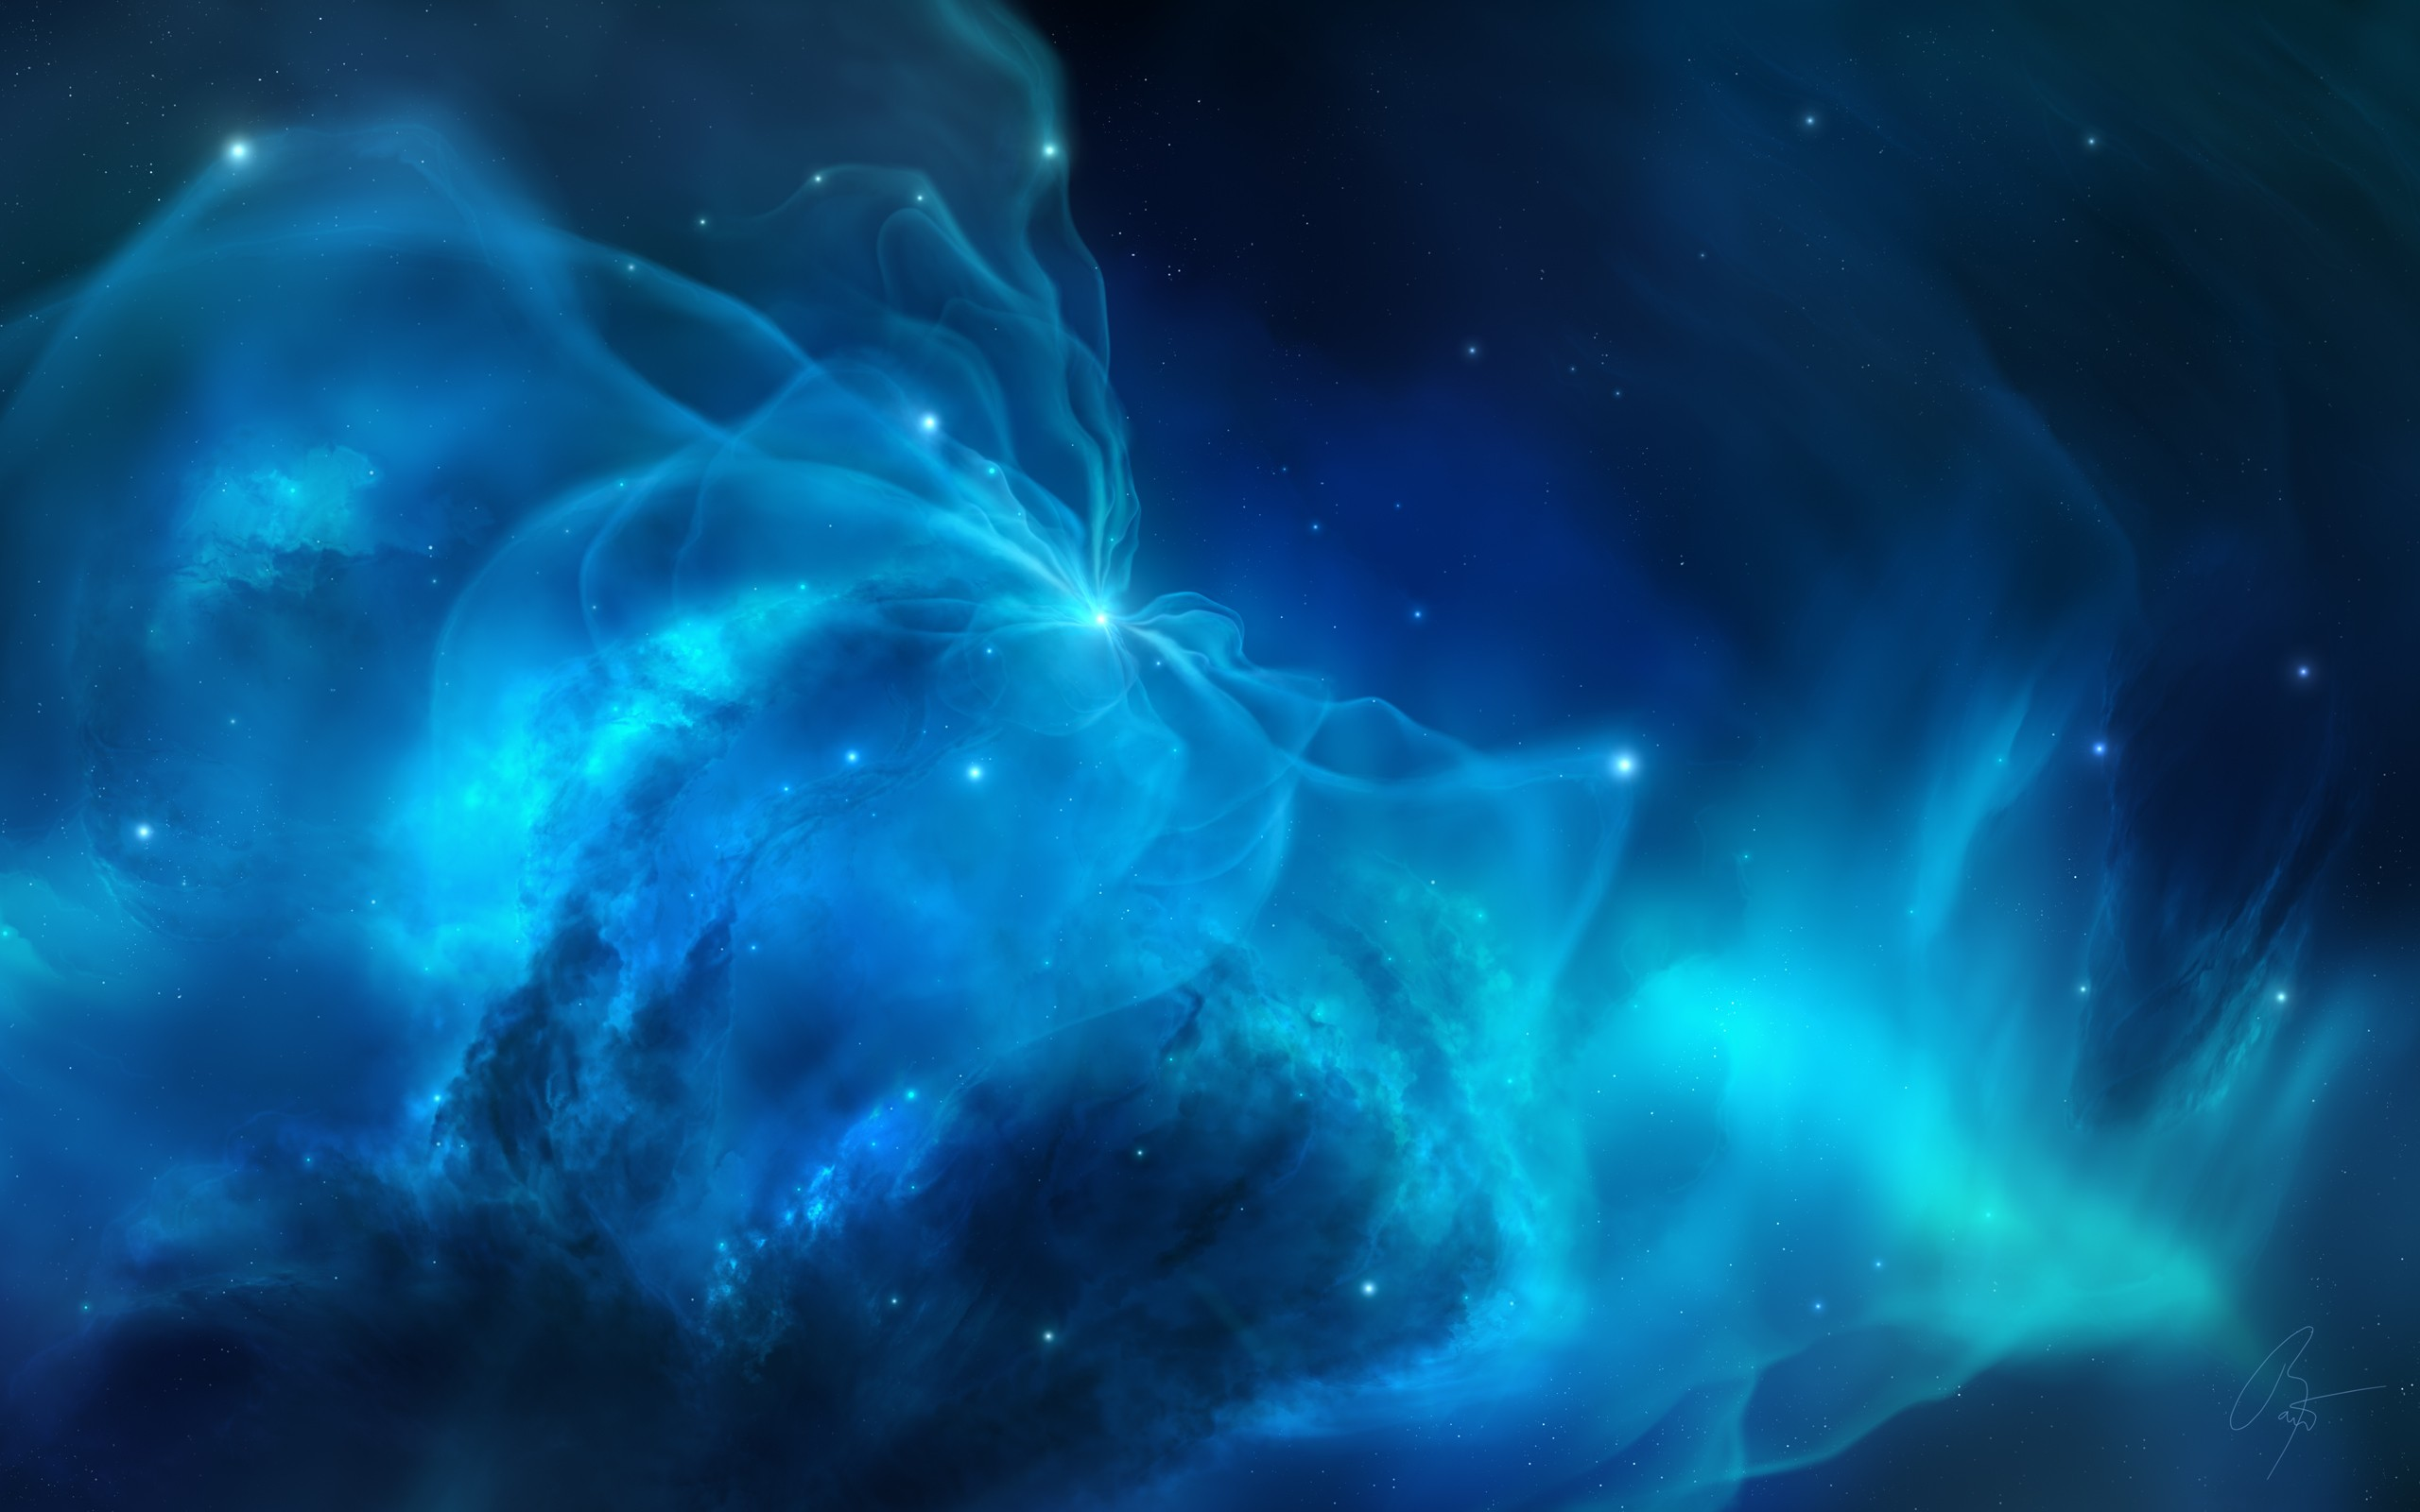 Blue space wallpaper download free amazing wallpapers for Paesaggi bellissimi per desktop